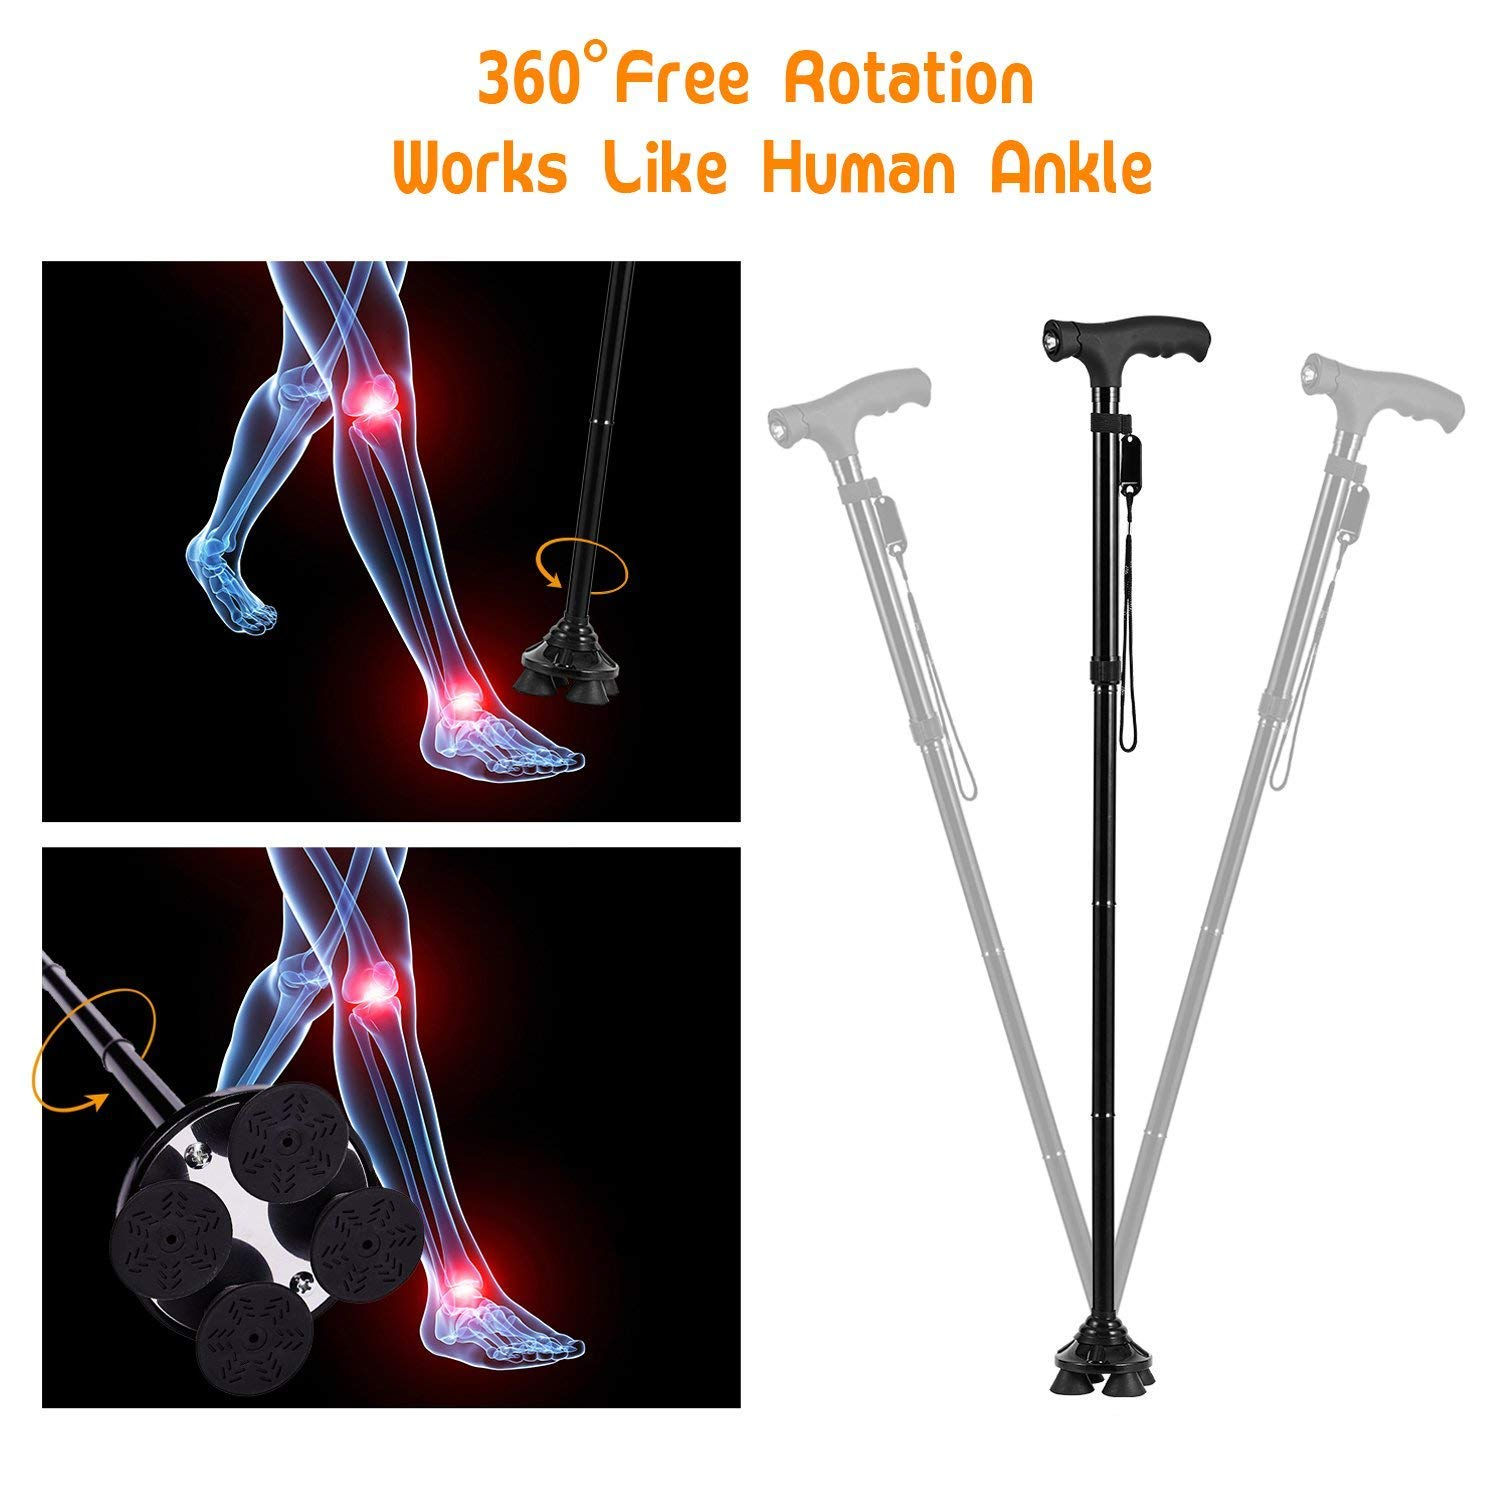 BigAlex Folding Walking Cane with LED Light,Adjustable & Portable Walking Stick, Lightweight,Collapsible with Carrying Bag for Men/Woman(Large) by BigAlex (Image #2)